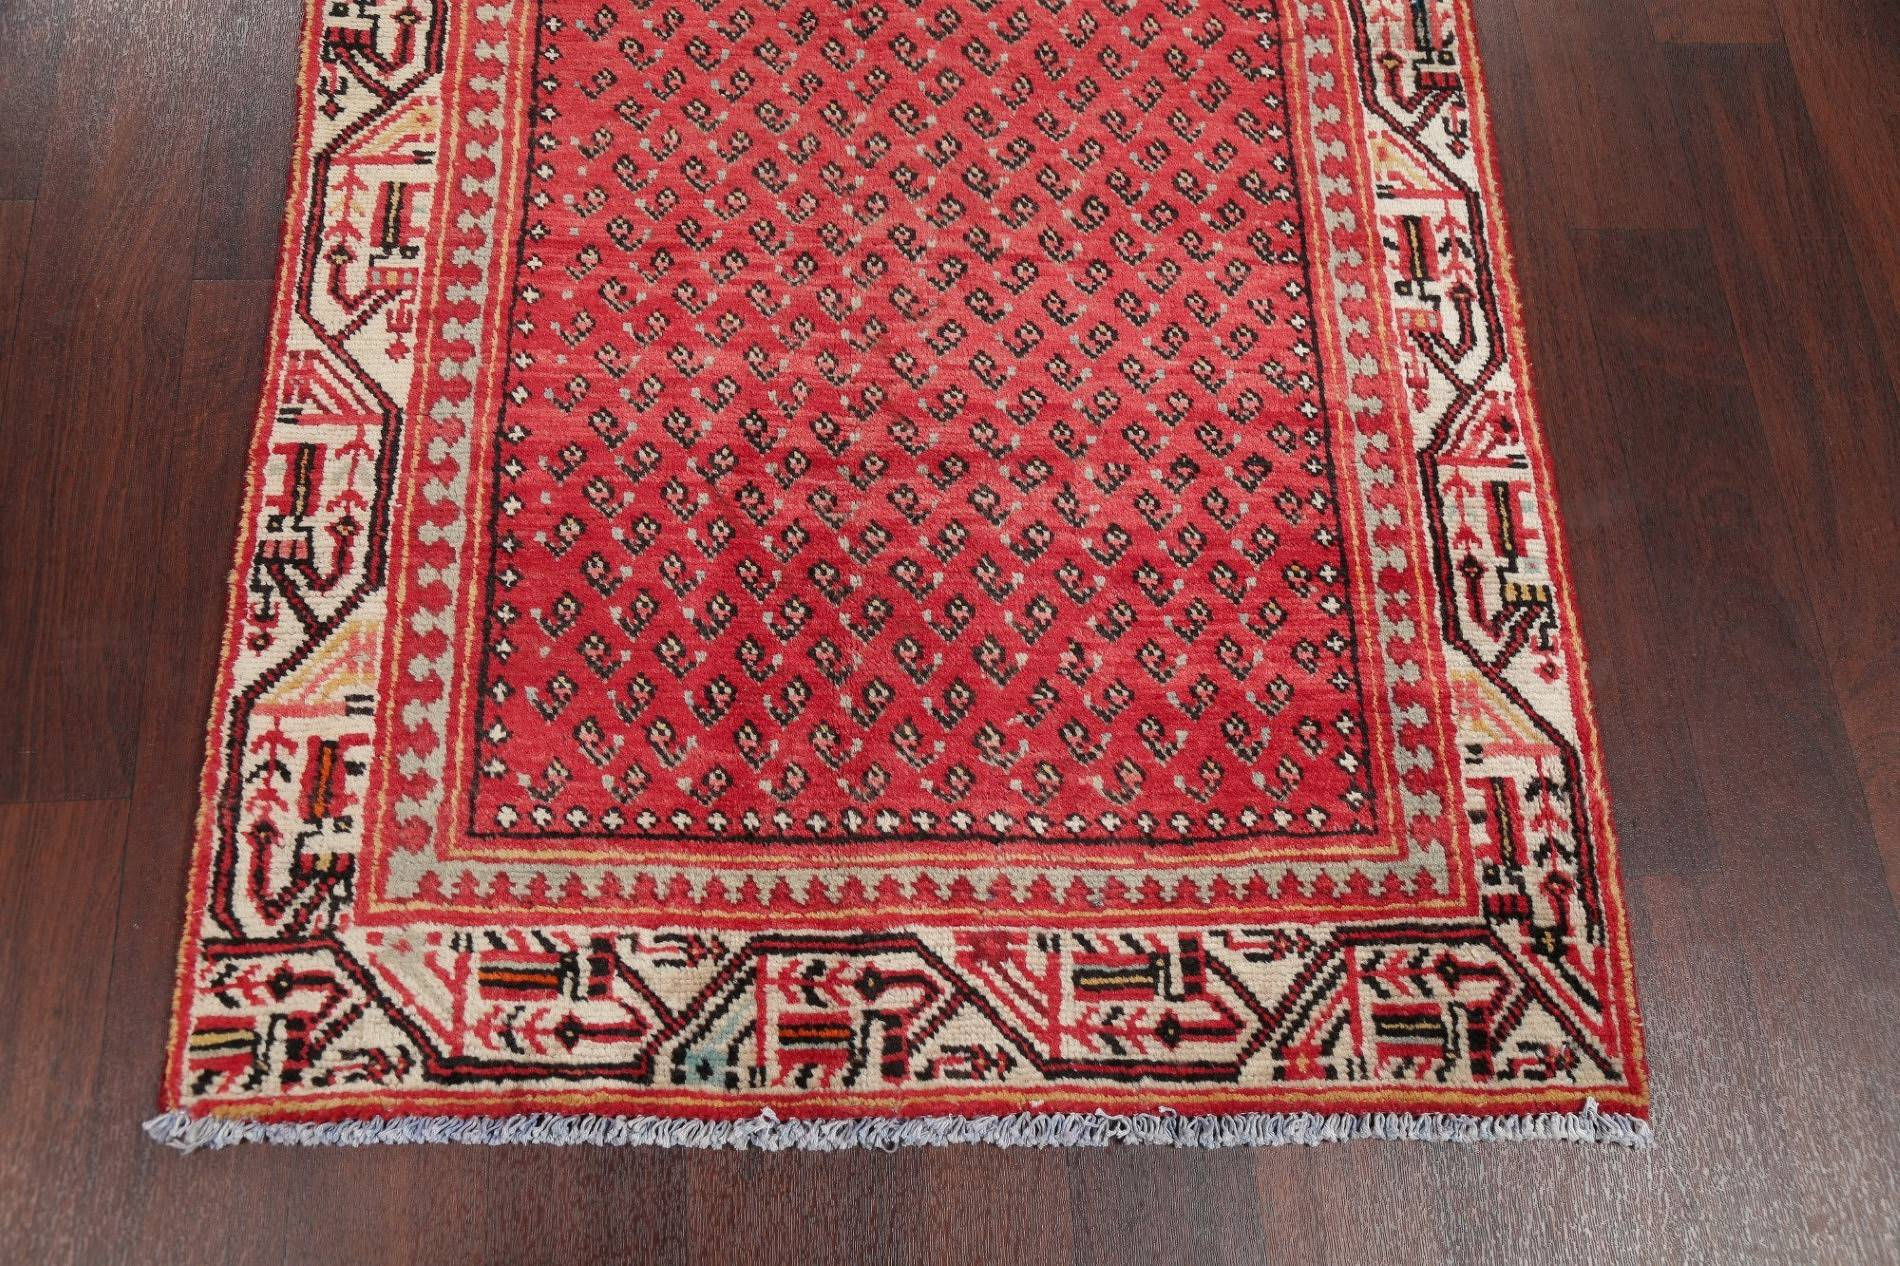 All-Over Paisley Botemir Persian Hand-Knotted 3x10 Wool Runner Rug